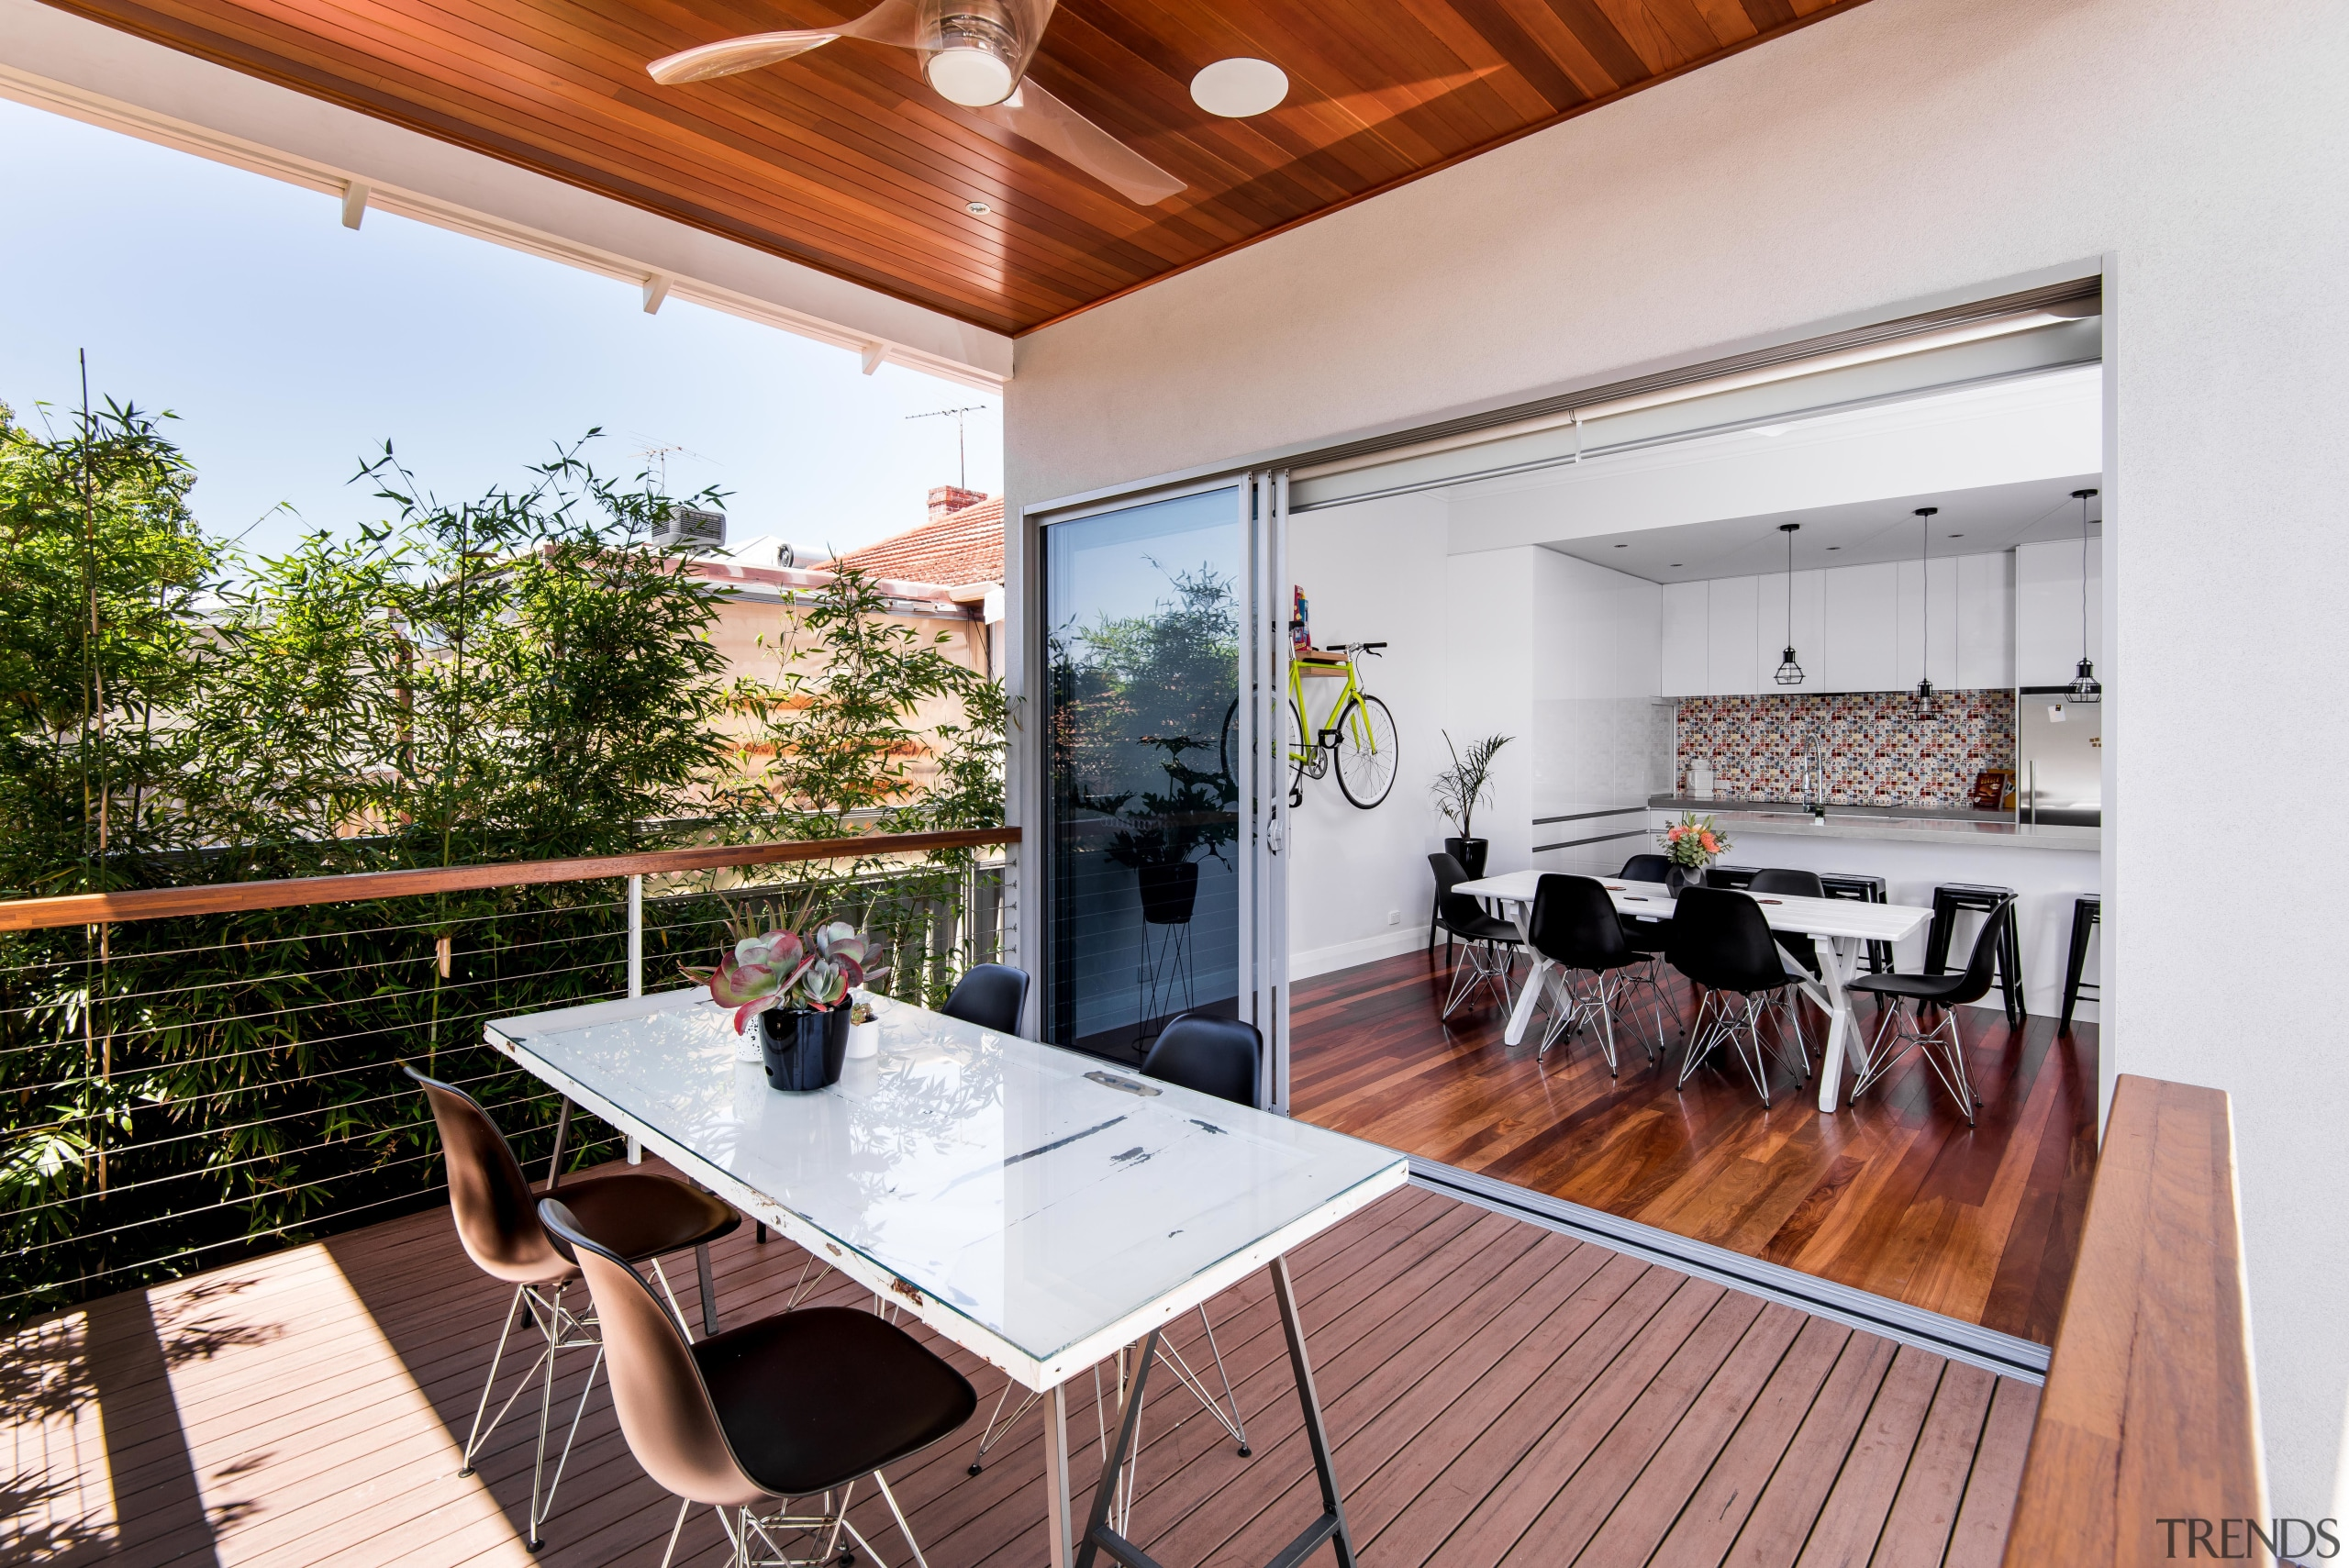 Bright and light - architecture | building | architecture, building, ceiling, dining room, estate, floor, furniture, hardwood, home, house, interior design, property, real estate, roof, room, table, wood, wood flooring, white